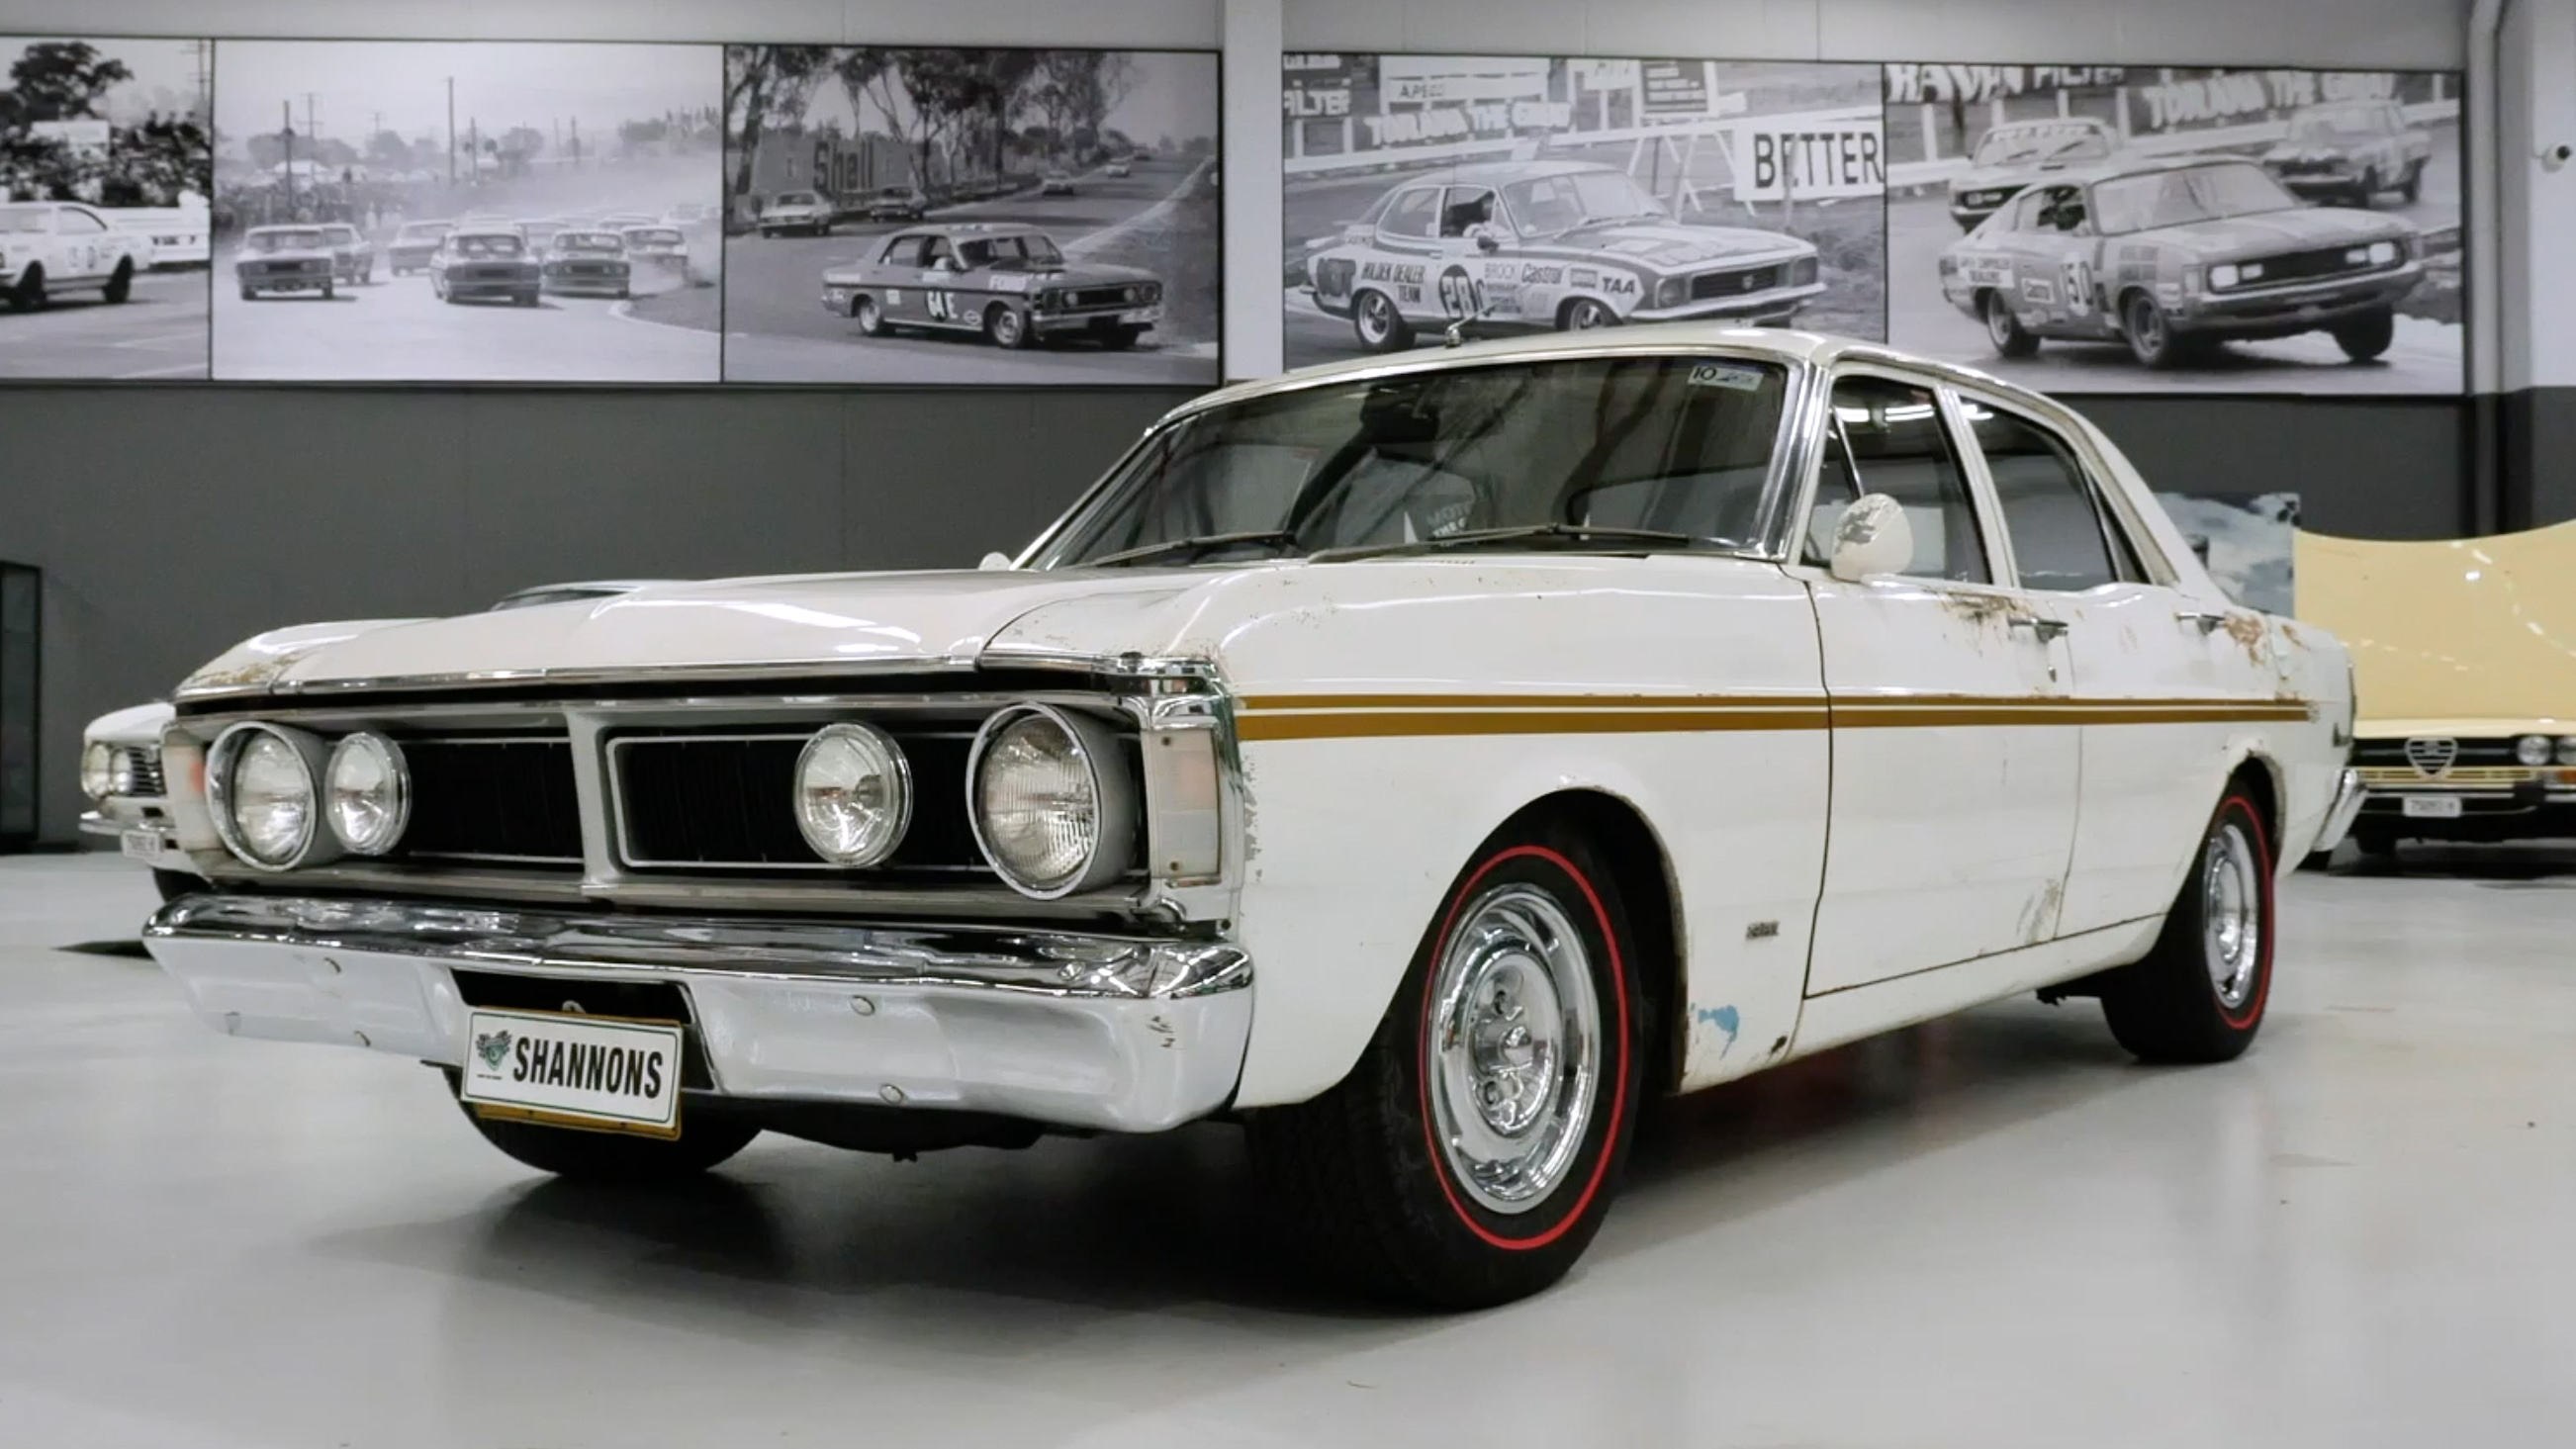 1971 Ford XY Falcon GS 351 'K-Code' Sedan - 2021 Shannons Summer Timed Online Auction